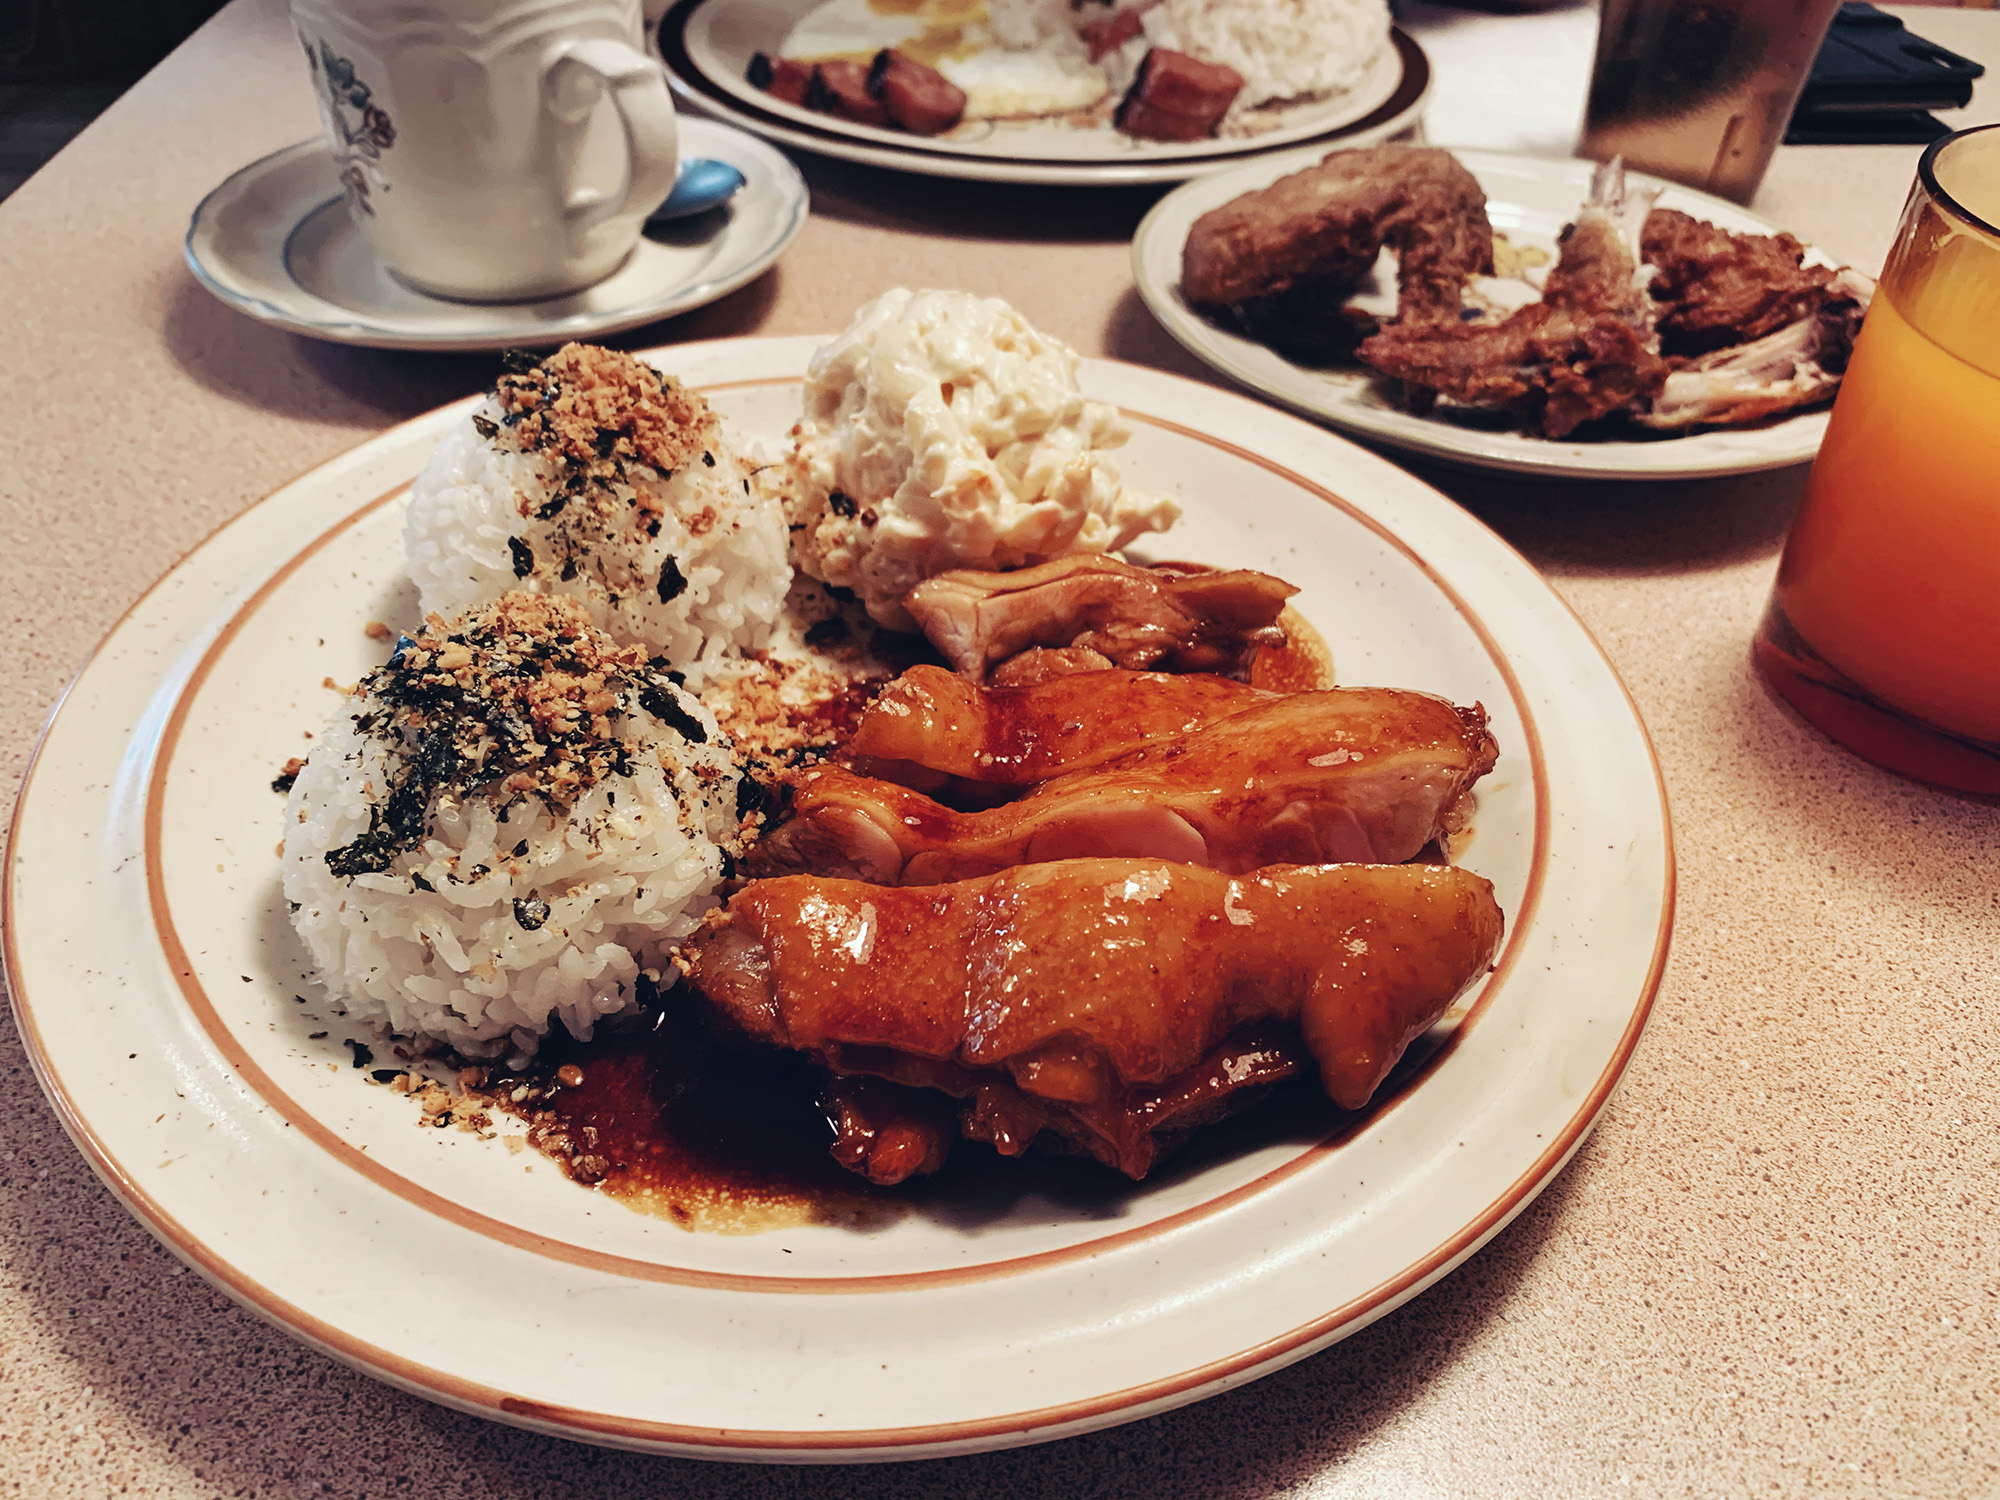 BB's Diner - Shoyu Chicken brunch